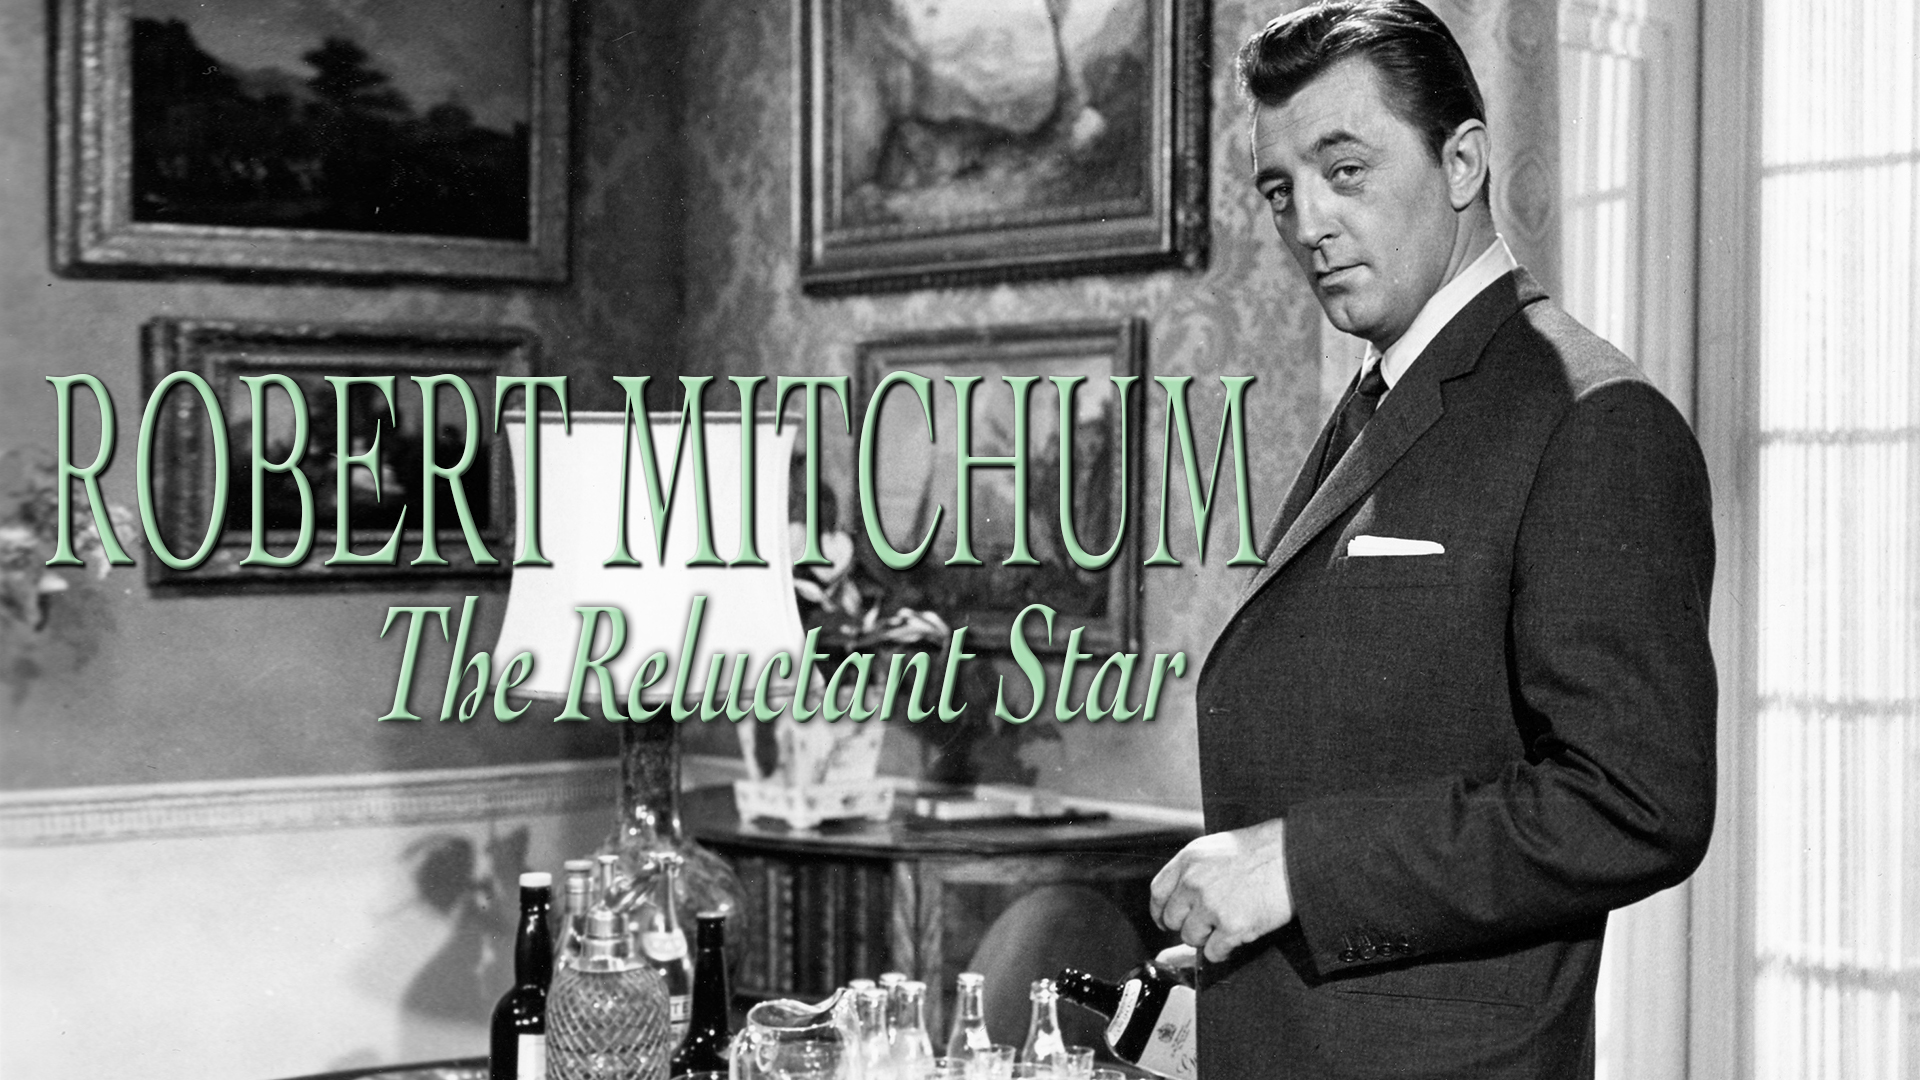 The Hollywood Collection: Robert Mitchum - The Reluctant Star